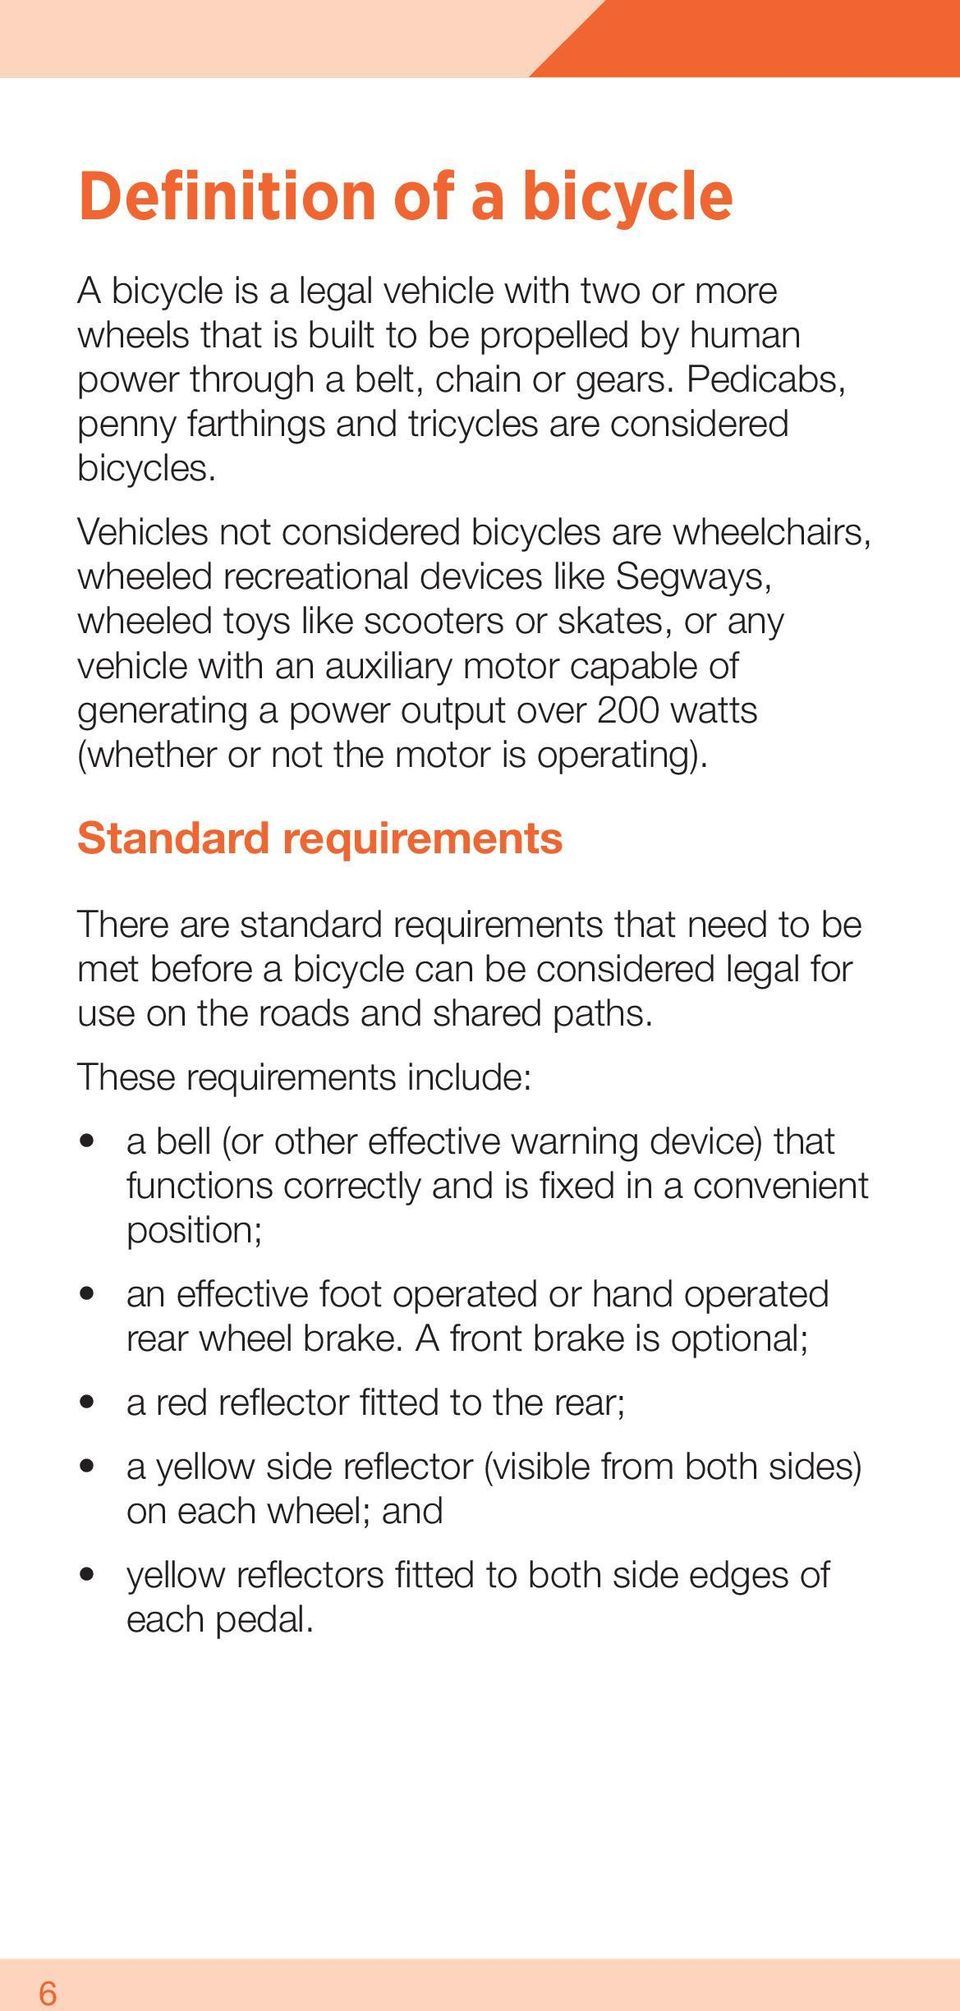 Vehicles not considered bicycles are wheelchairs, wheeled recreational devices like Segways, wheeled toys like scooters or skates, or any vehicle with an auxiliary motor capable of generating a power